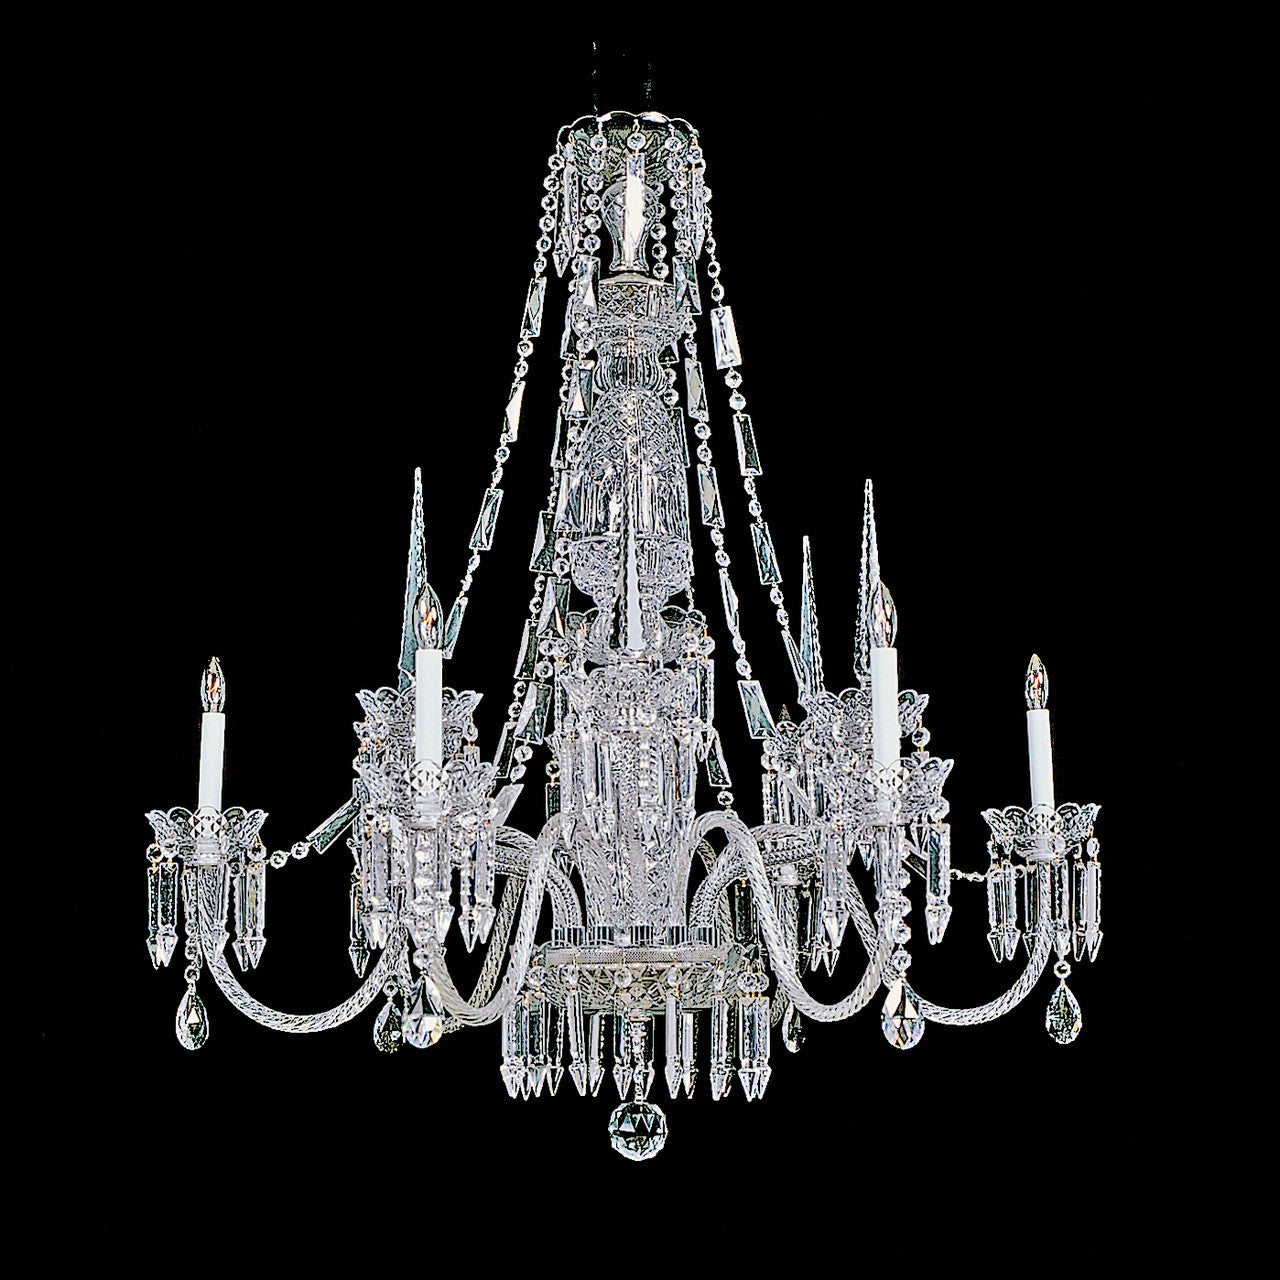 Beauregard 6 light crystal chandelier 38 x 42 kings 6 light and 6 spear beauregard chandelier reproduction aloadofball Gallery